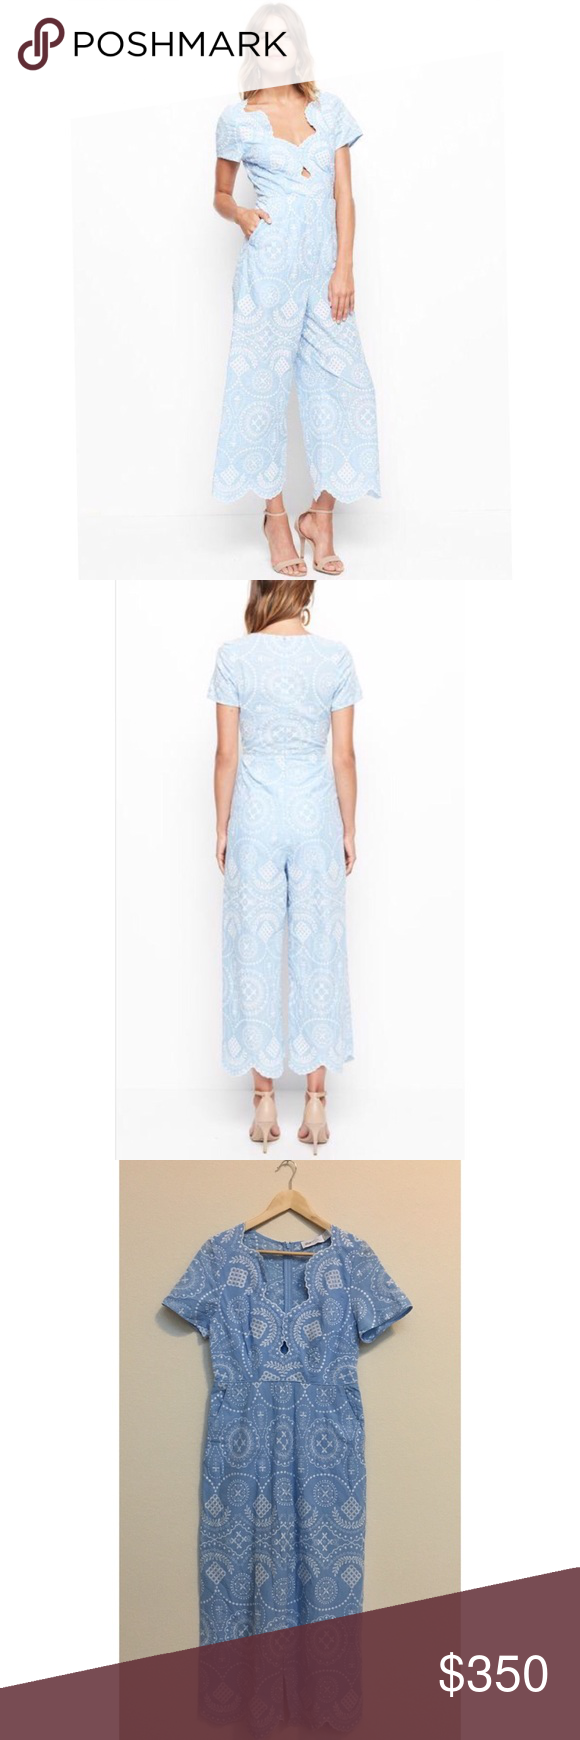 d05b85f08c Alice McCall 8 Crave You Jumpsuit In Sky Blue  450 Alice McCall Women s 8  Crave You